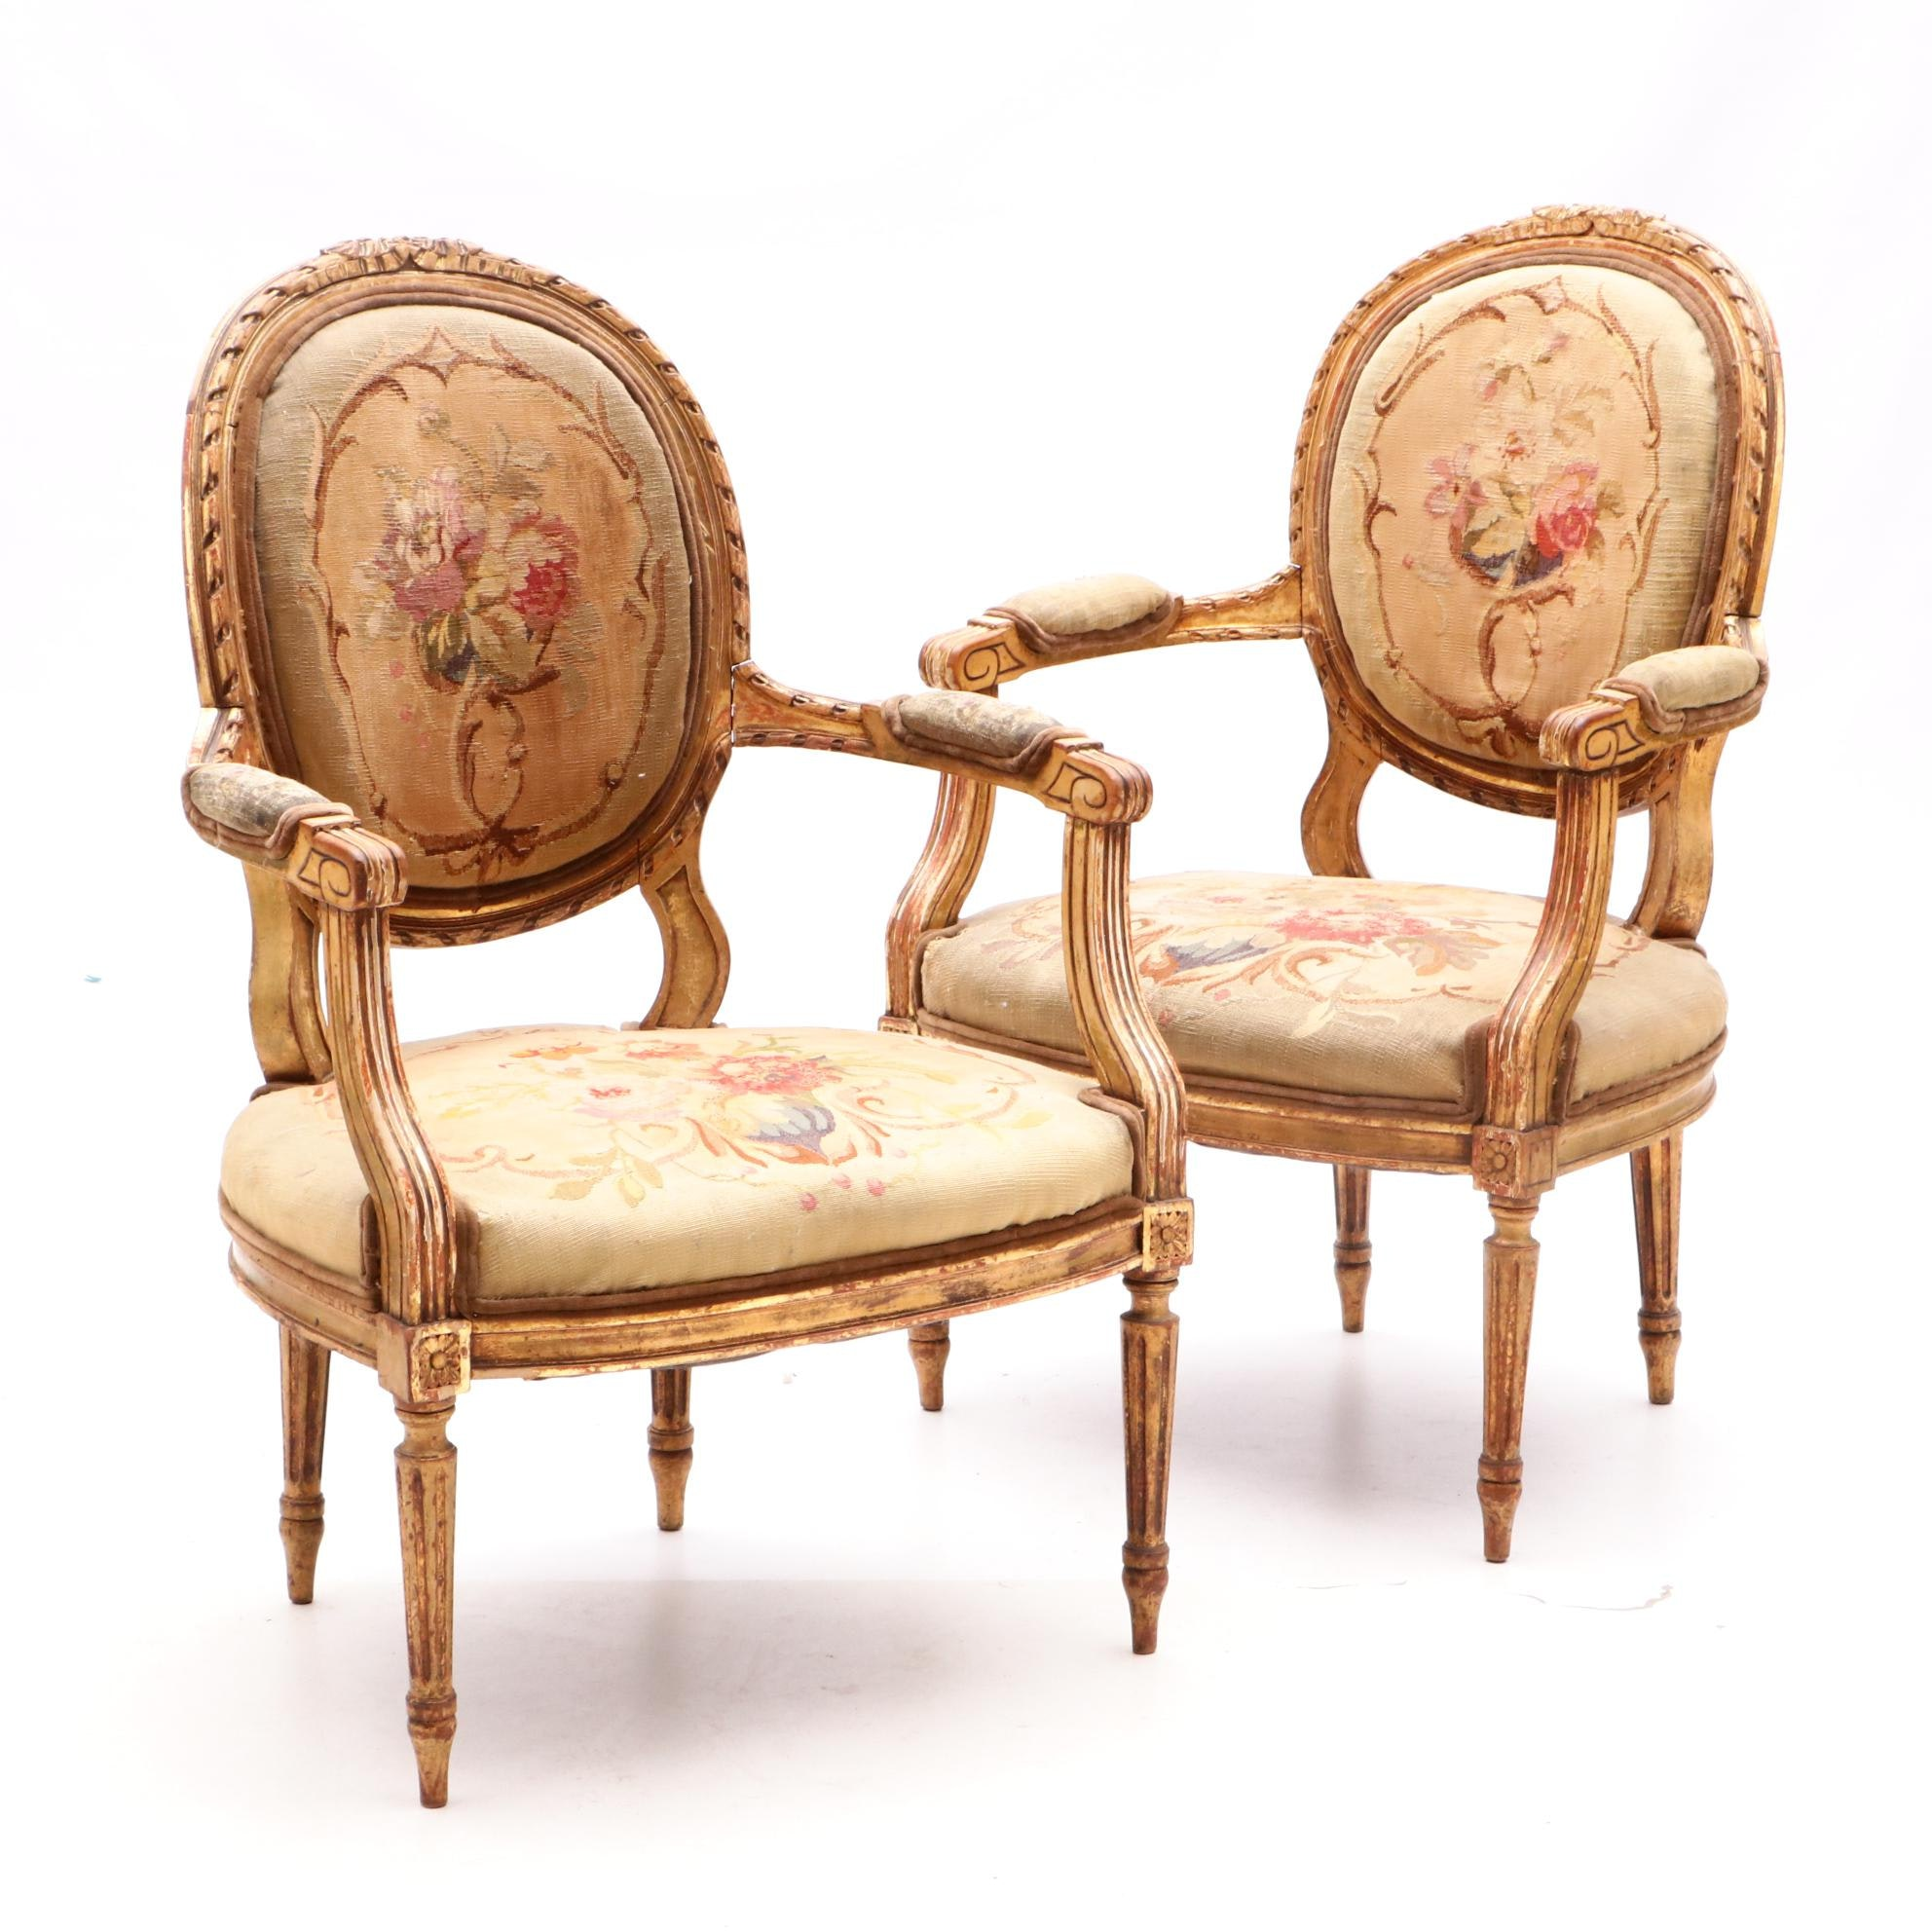 Louis XVI Fauteuils with Aubusson Upholstery, 19th Century